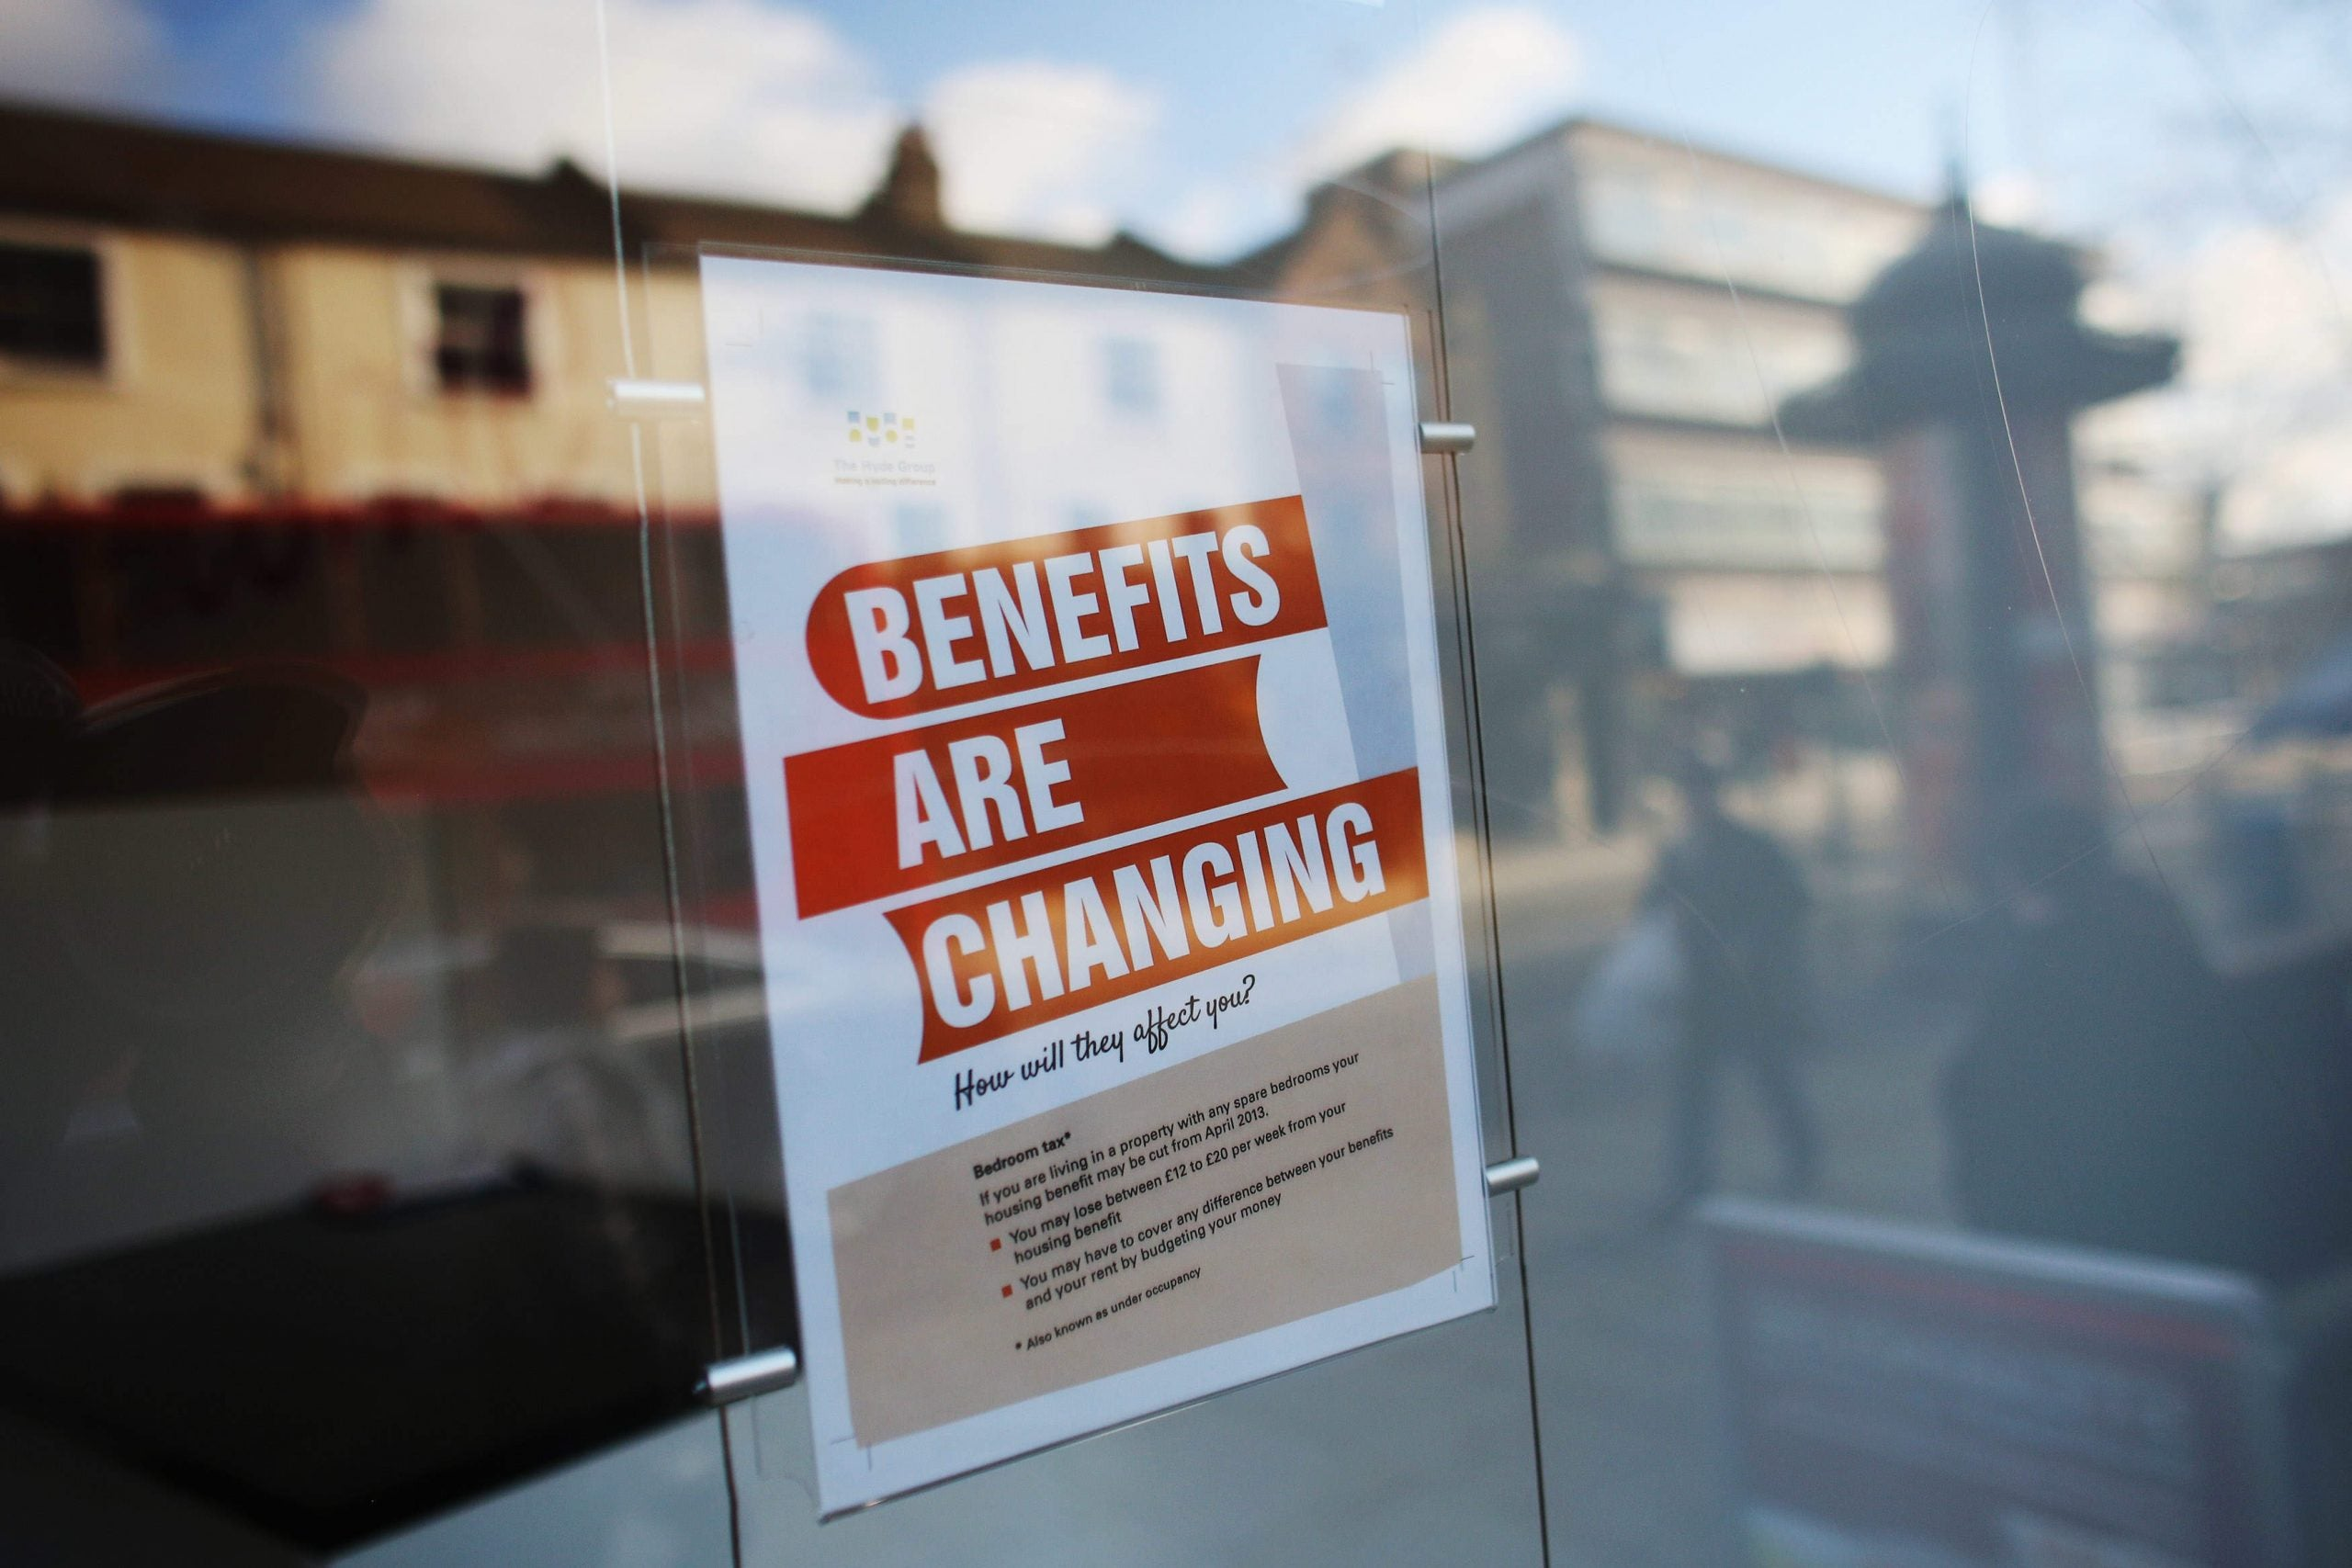 As the Emergency Budget comes closer, the government must remember that benefits are a public service